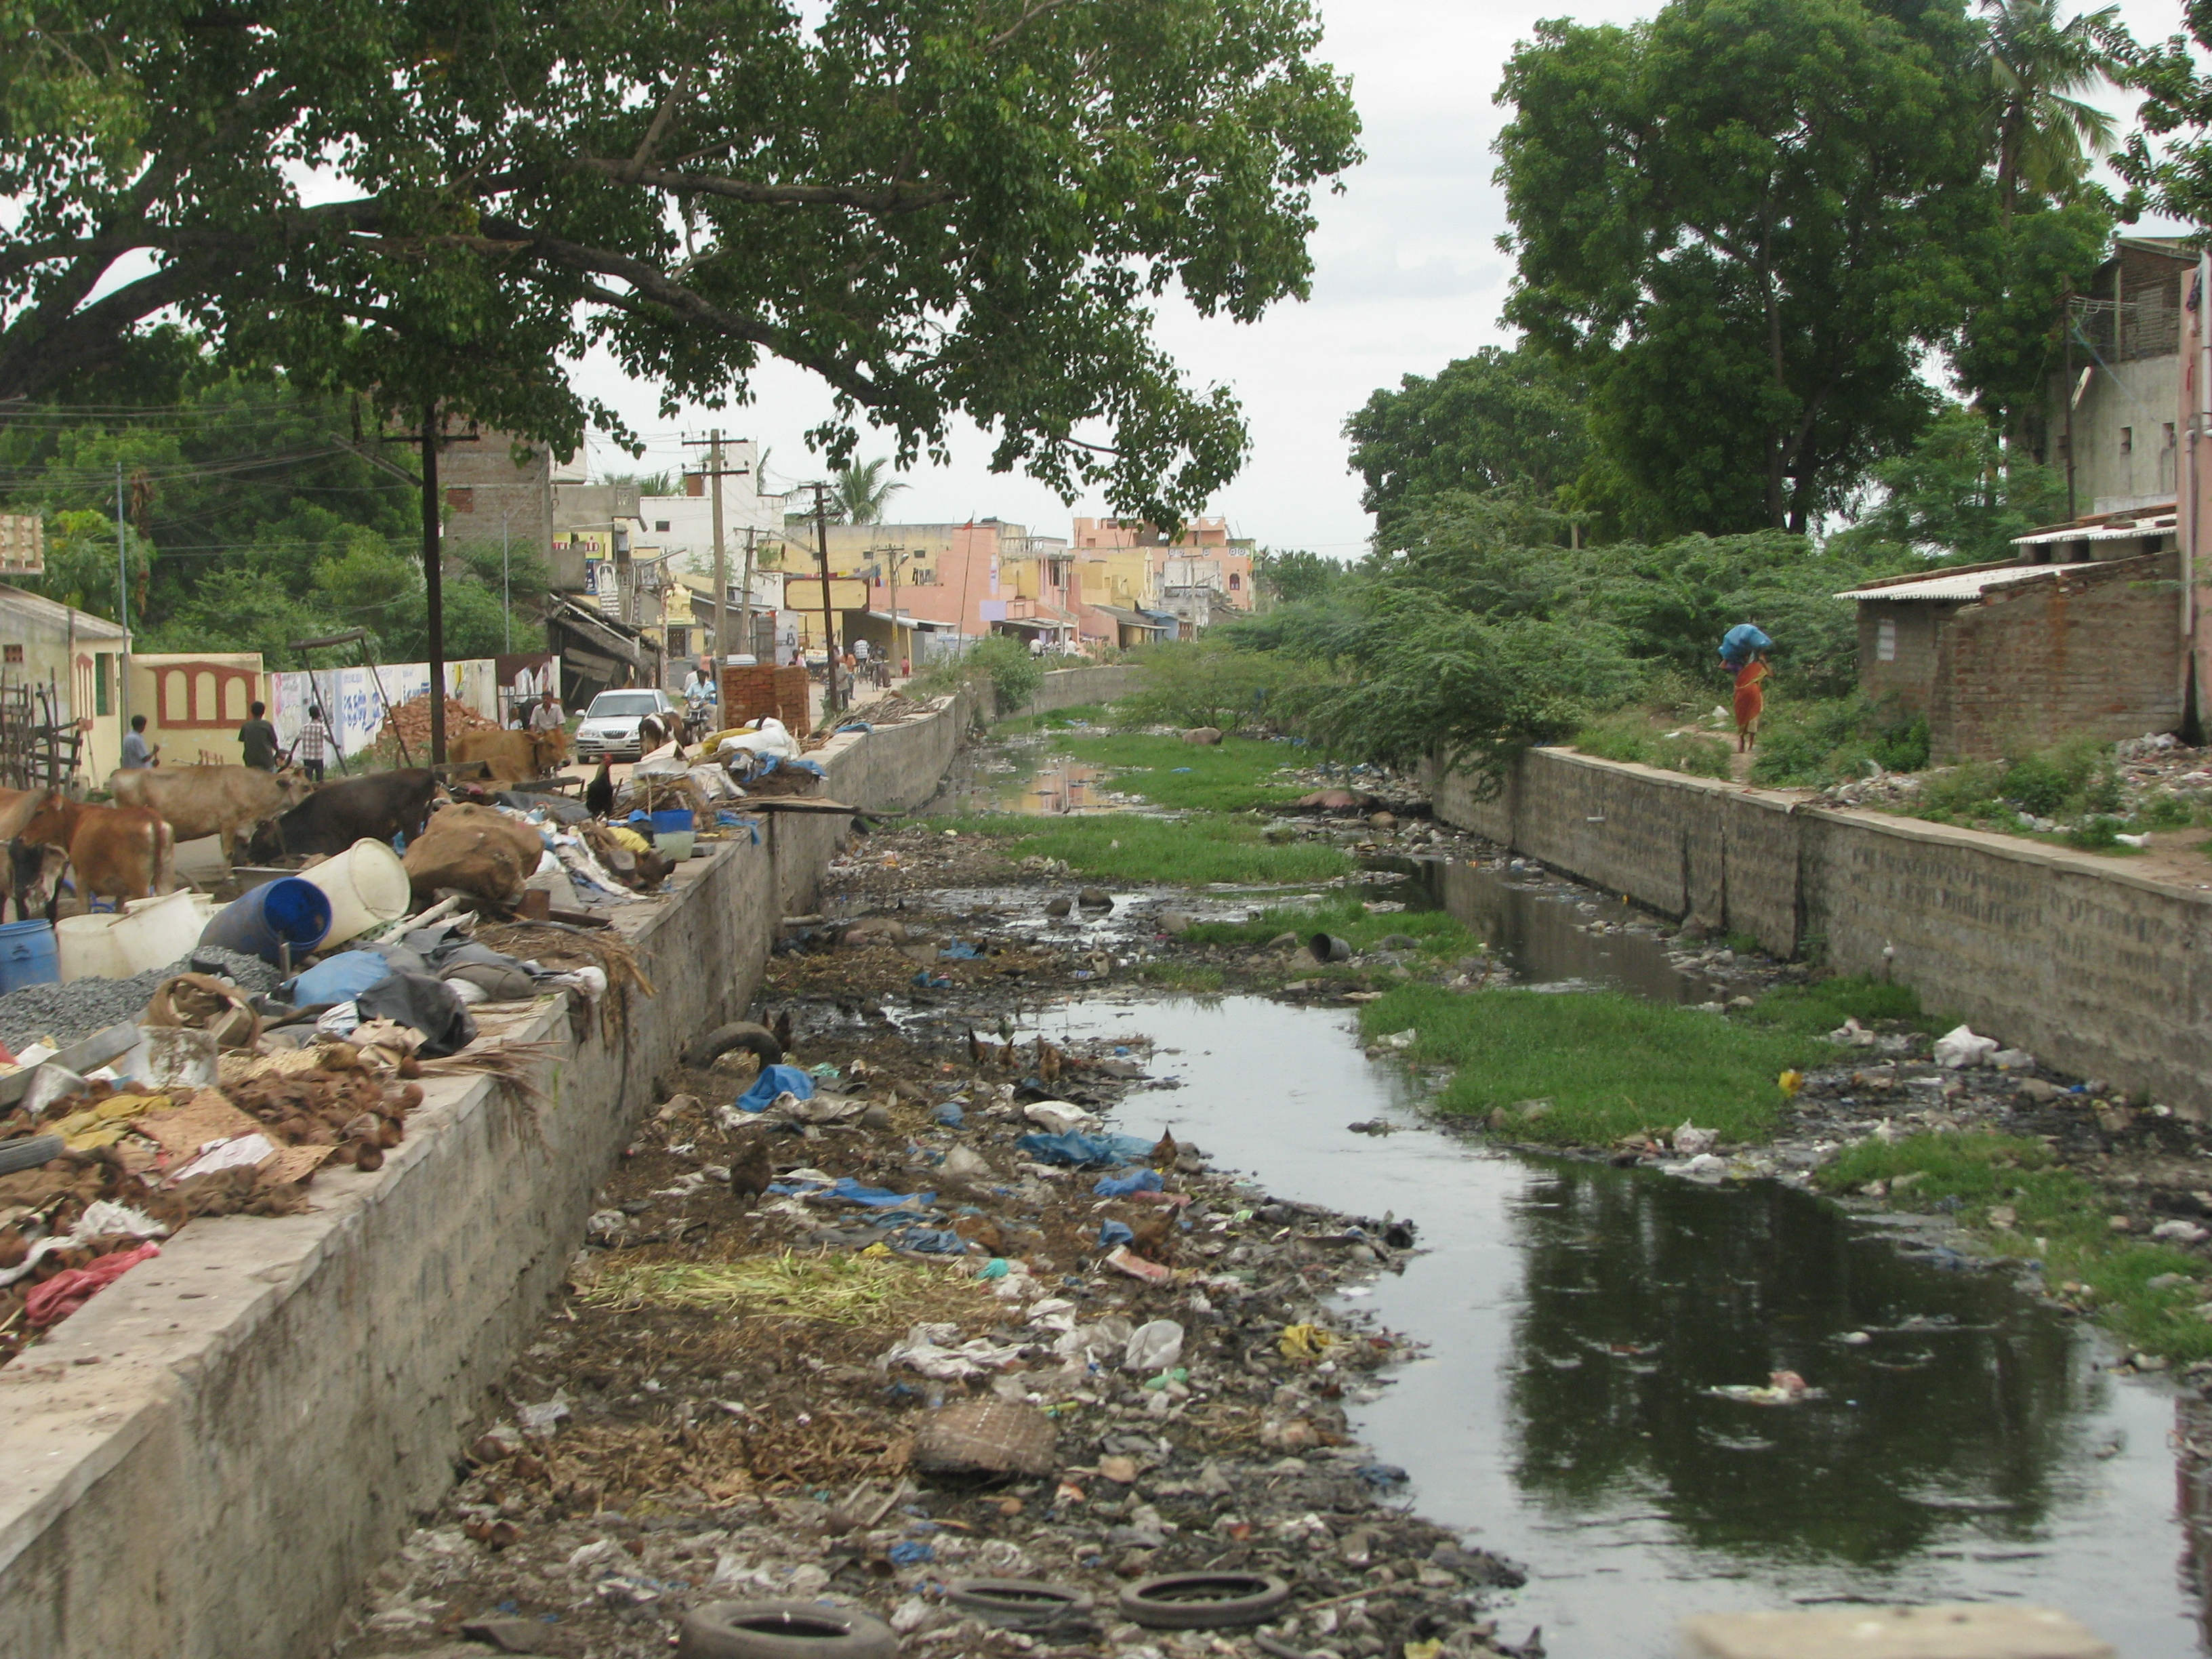 environmental problems of mumbai Environmental problems of mumbai mumbai- the name conjures up images of high skyscrapers, wide roads, the sea-kissed marine drive, a land of opportunity and enterprise.